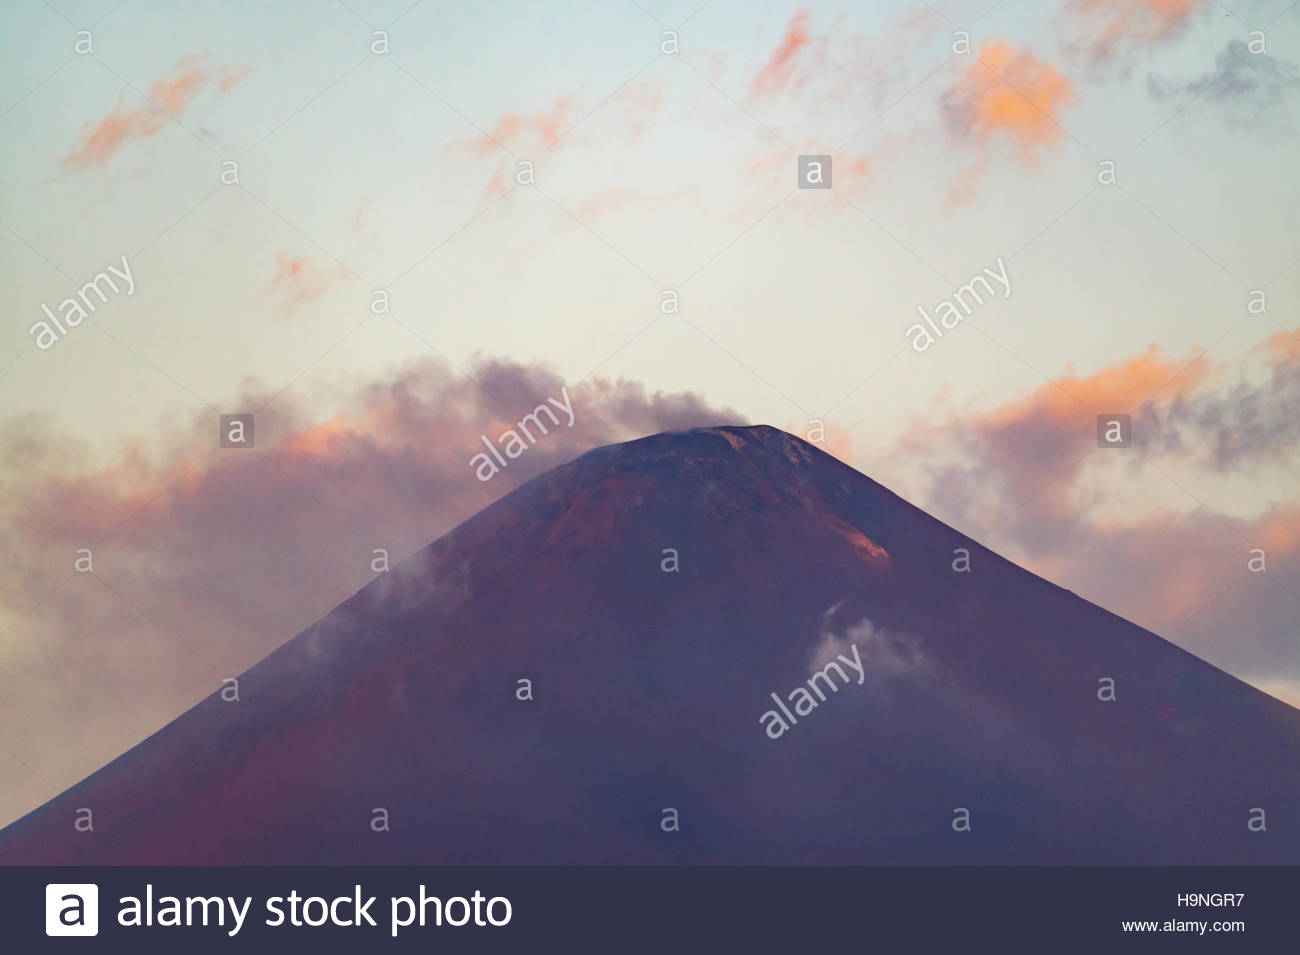 peak-of-volcan-momotombo-showing-recent-